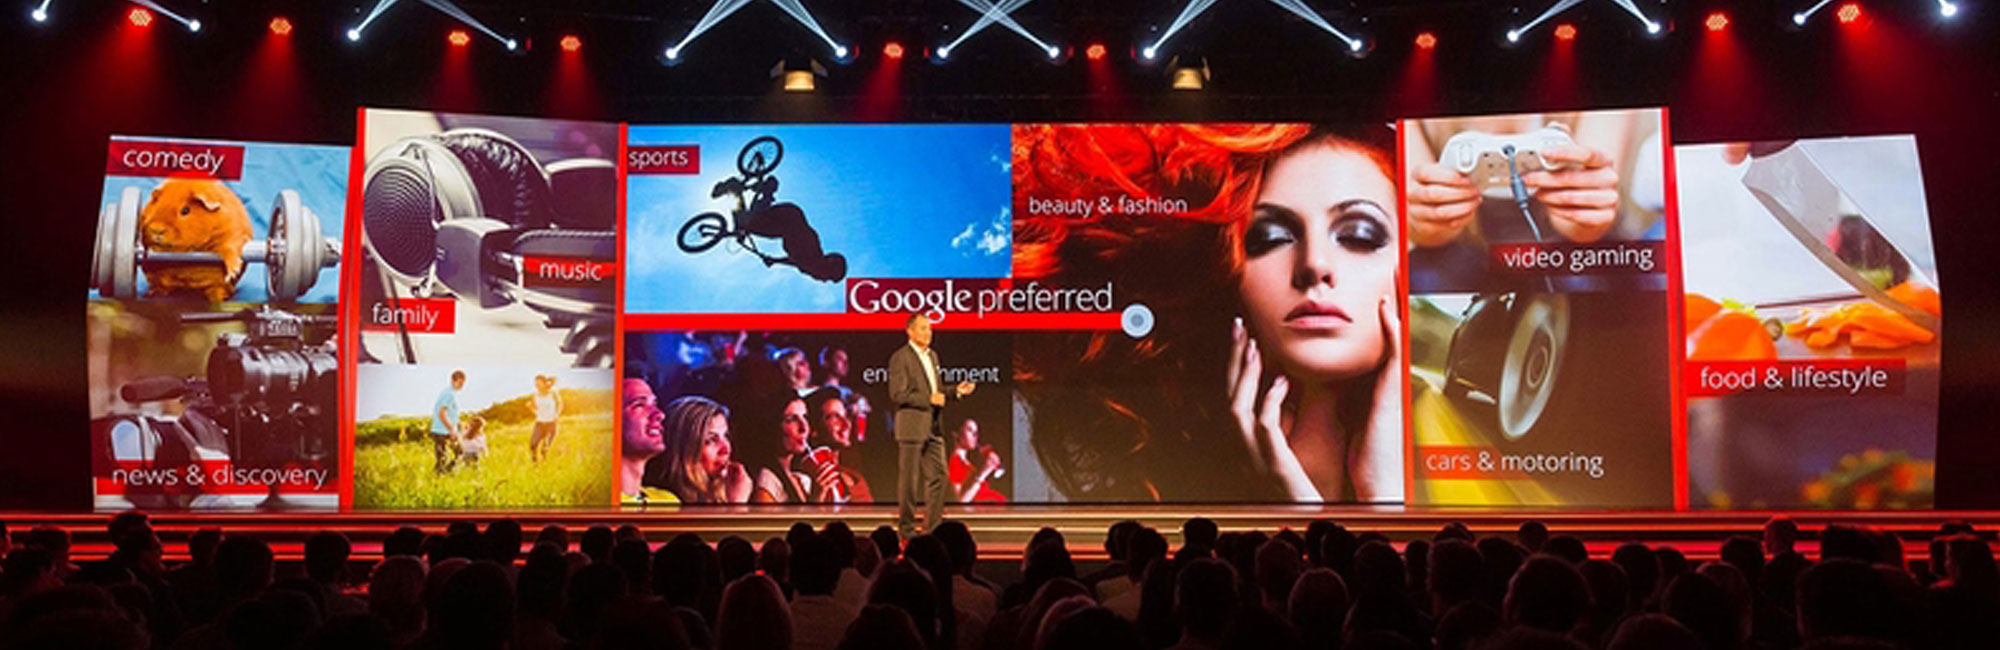 14.-Google-YouTube-Brandcast